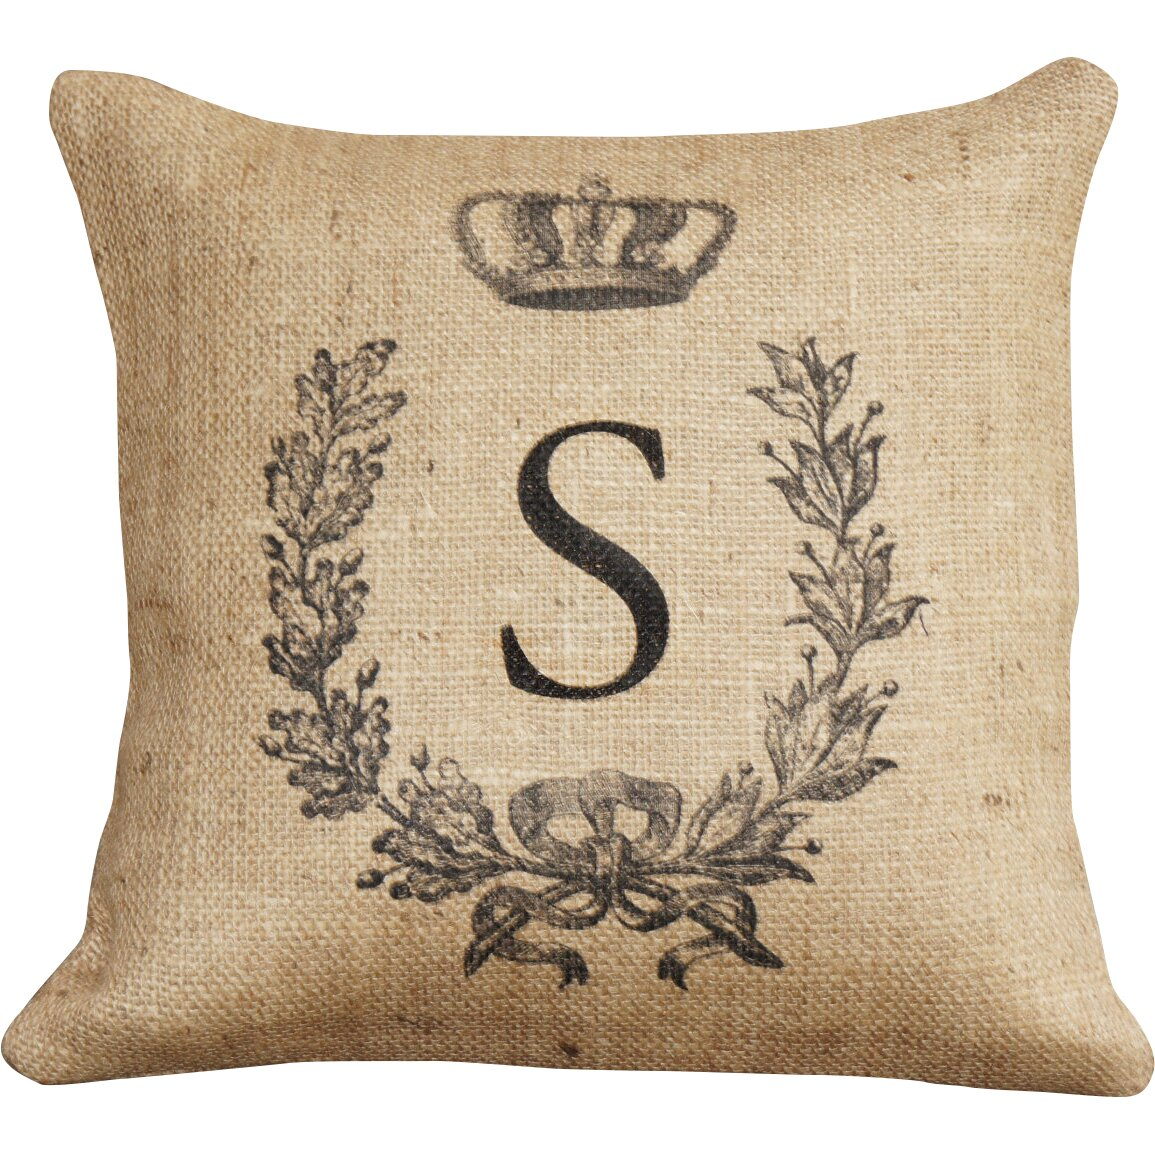 How To Make A Monogram Throw Pillow : TheWatsonShop Monogram Personalized Burlap Throw Pillow & Reviews Wayfair.ca